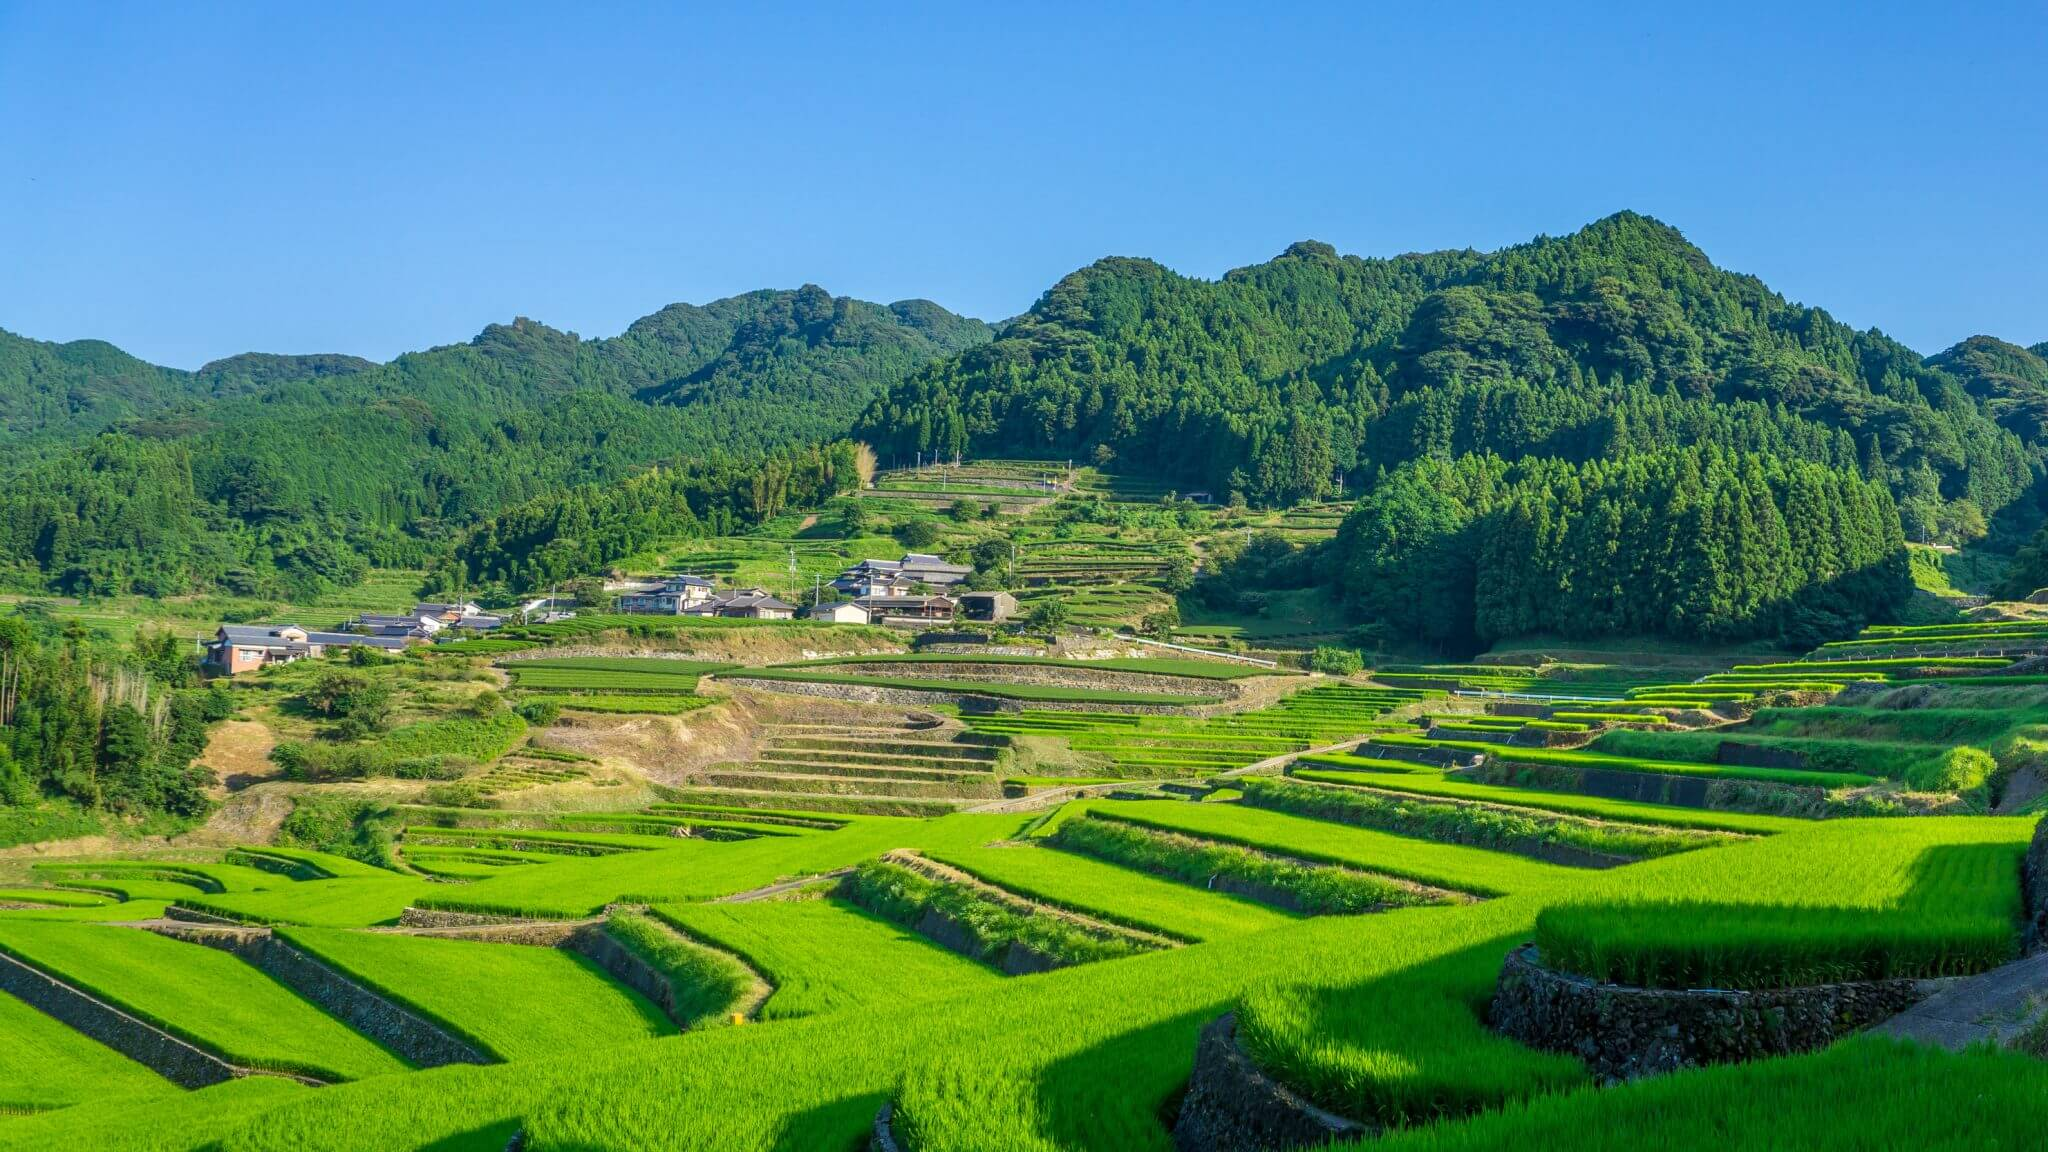 Onigitanada – Hasami's Terraced Rice Field